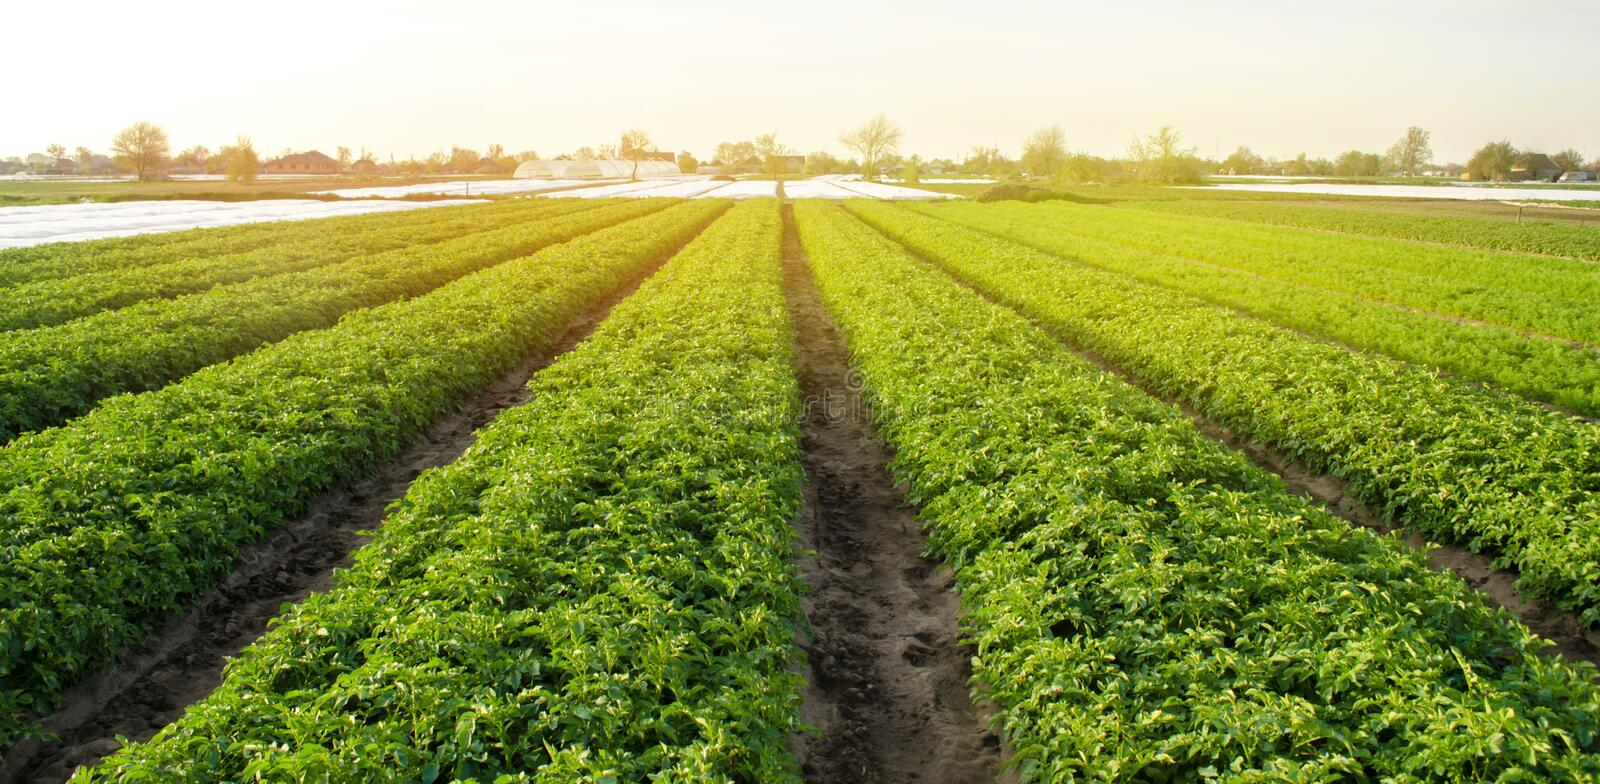 Potato plantations are grow on the field on a sunny day. Growing organic vegetables in the field. Vegetable rows. Agriculture. Farming. Selective focus stock images